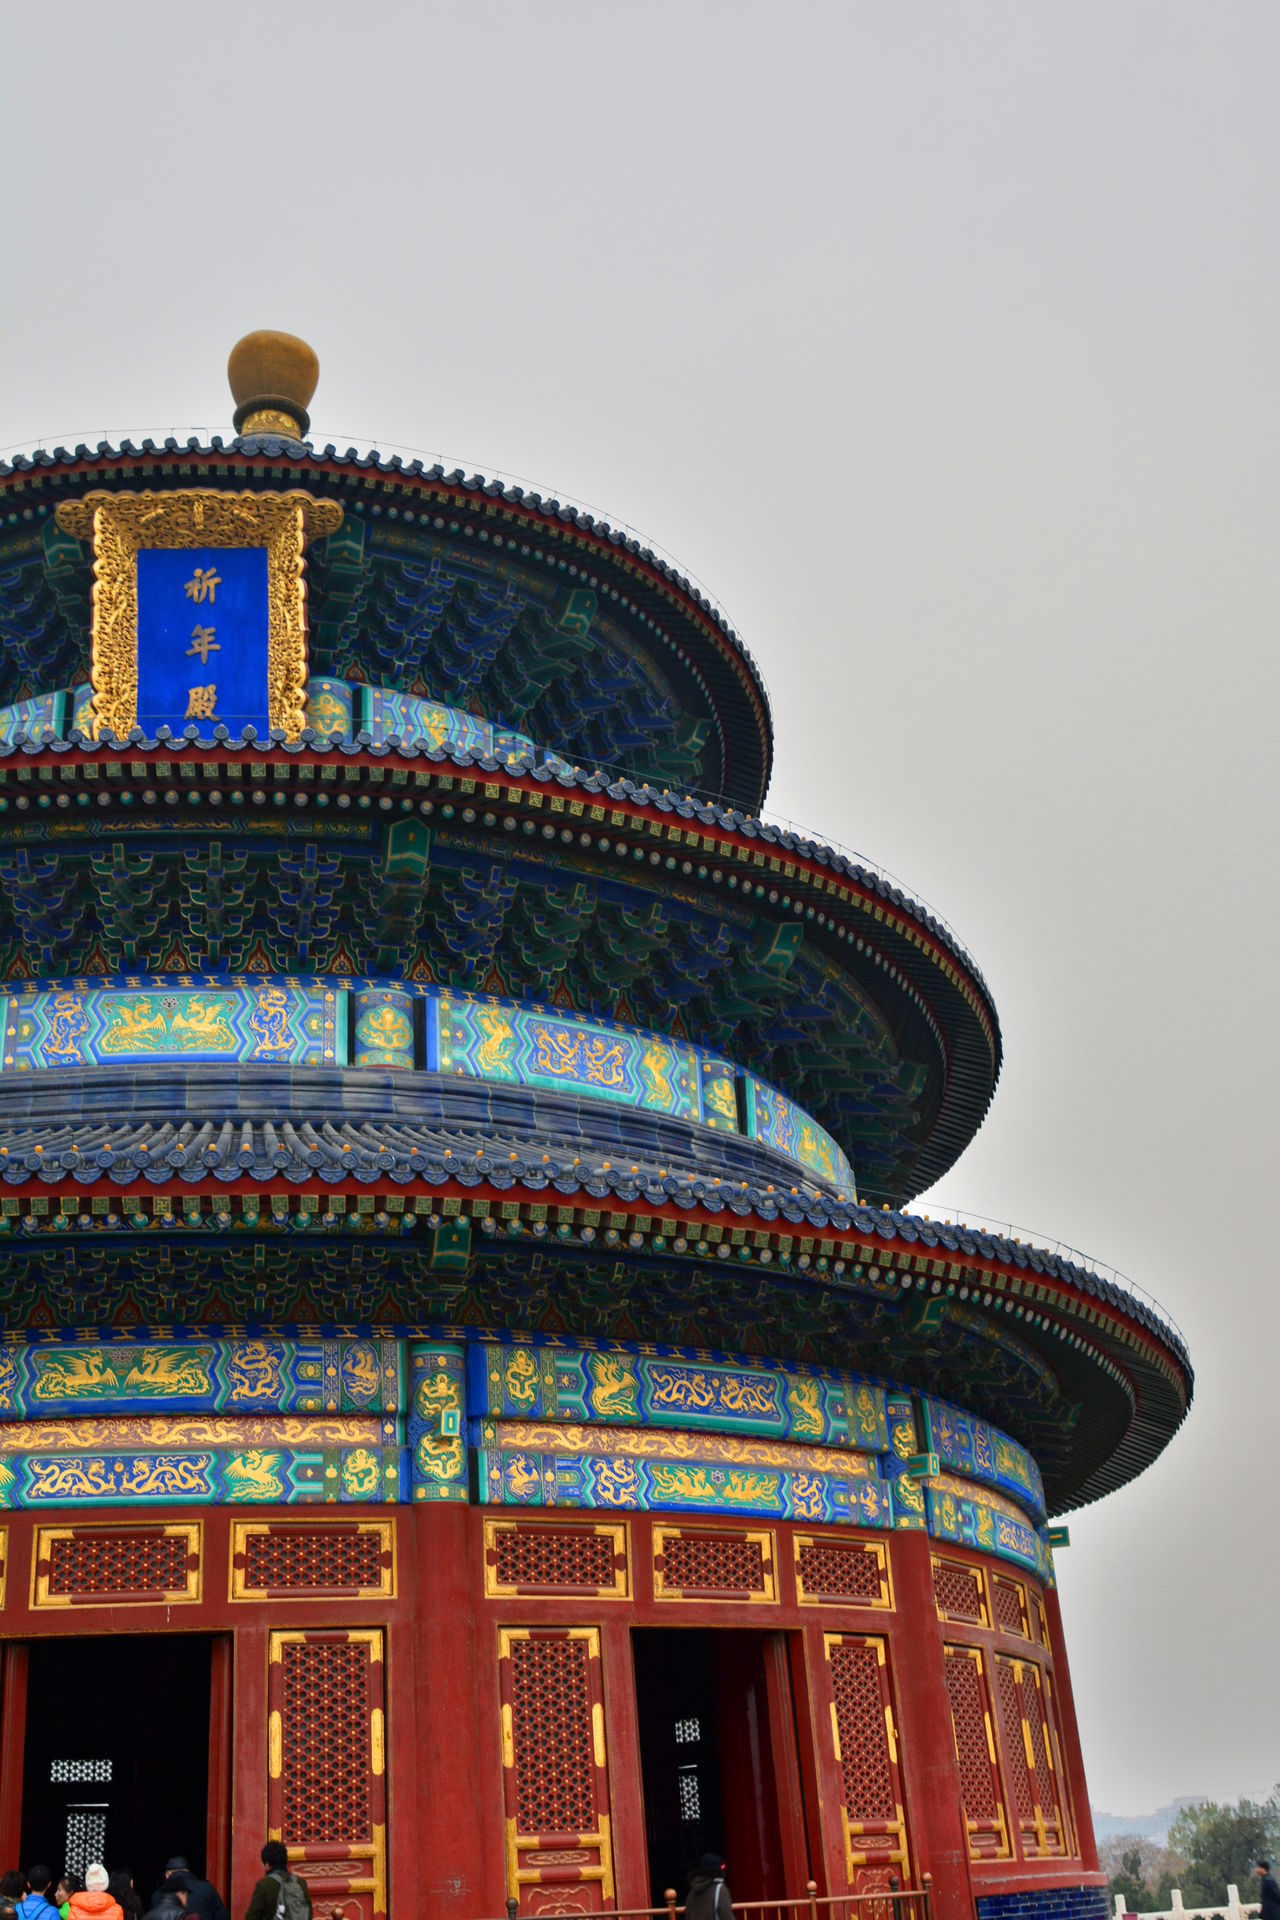 Temple of Heaven Architecture ASIA Beijing Beijing, China Building Building Exterior Built Structure Capital Cities  China Chinese Cultures EyeEm China HDR Historical Building History Multi Colored Outdoors Roof Temple Temple - Building Temple Of Heaven Tourism Travel Travel Destinations